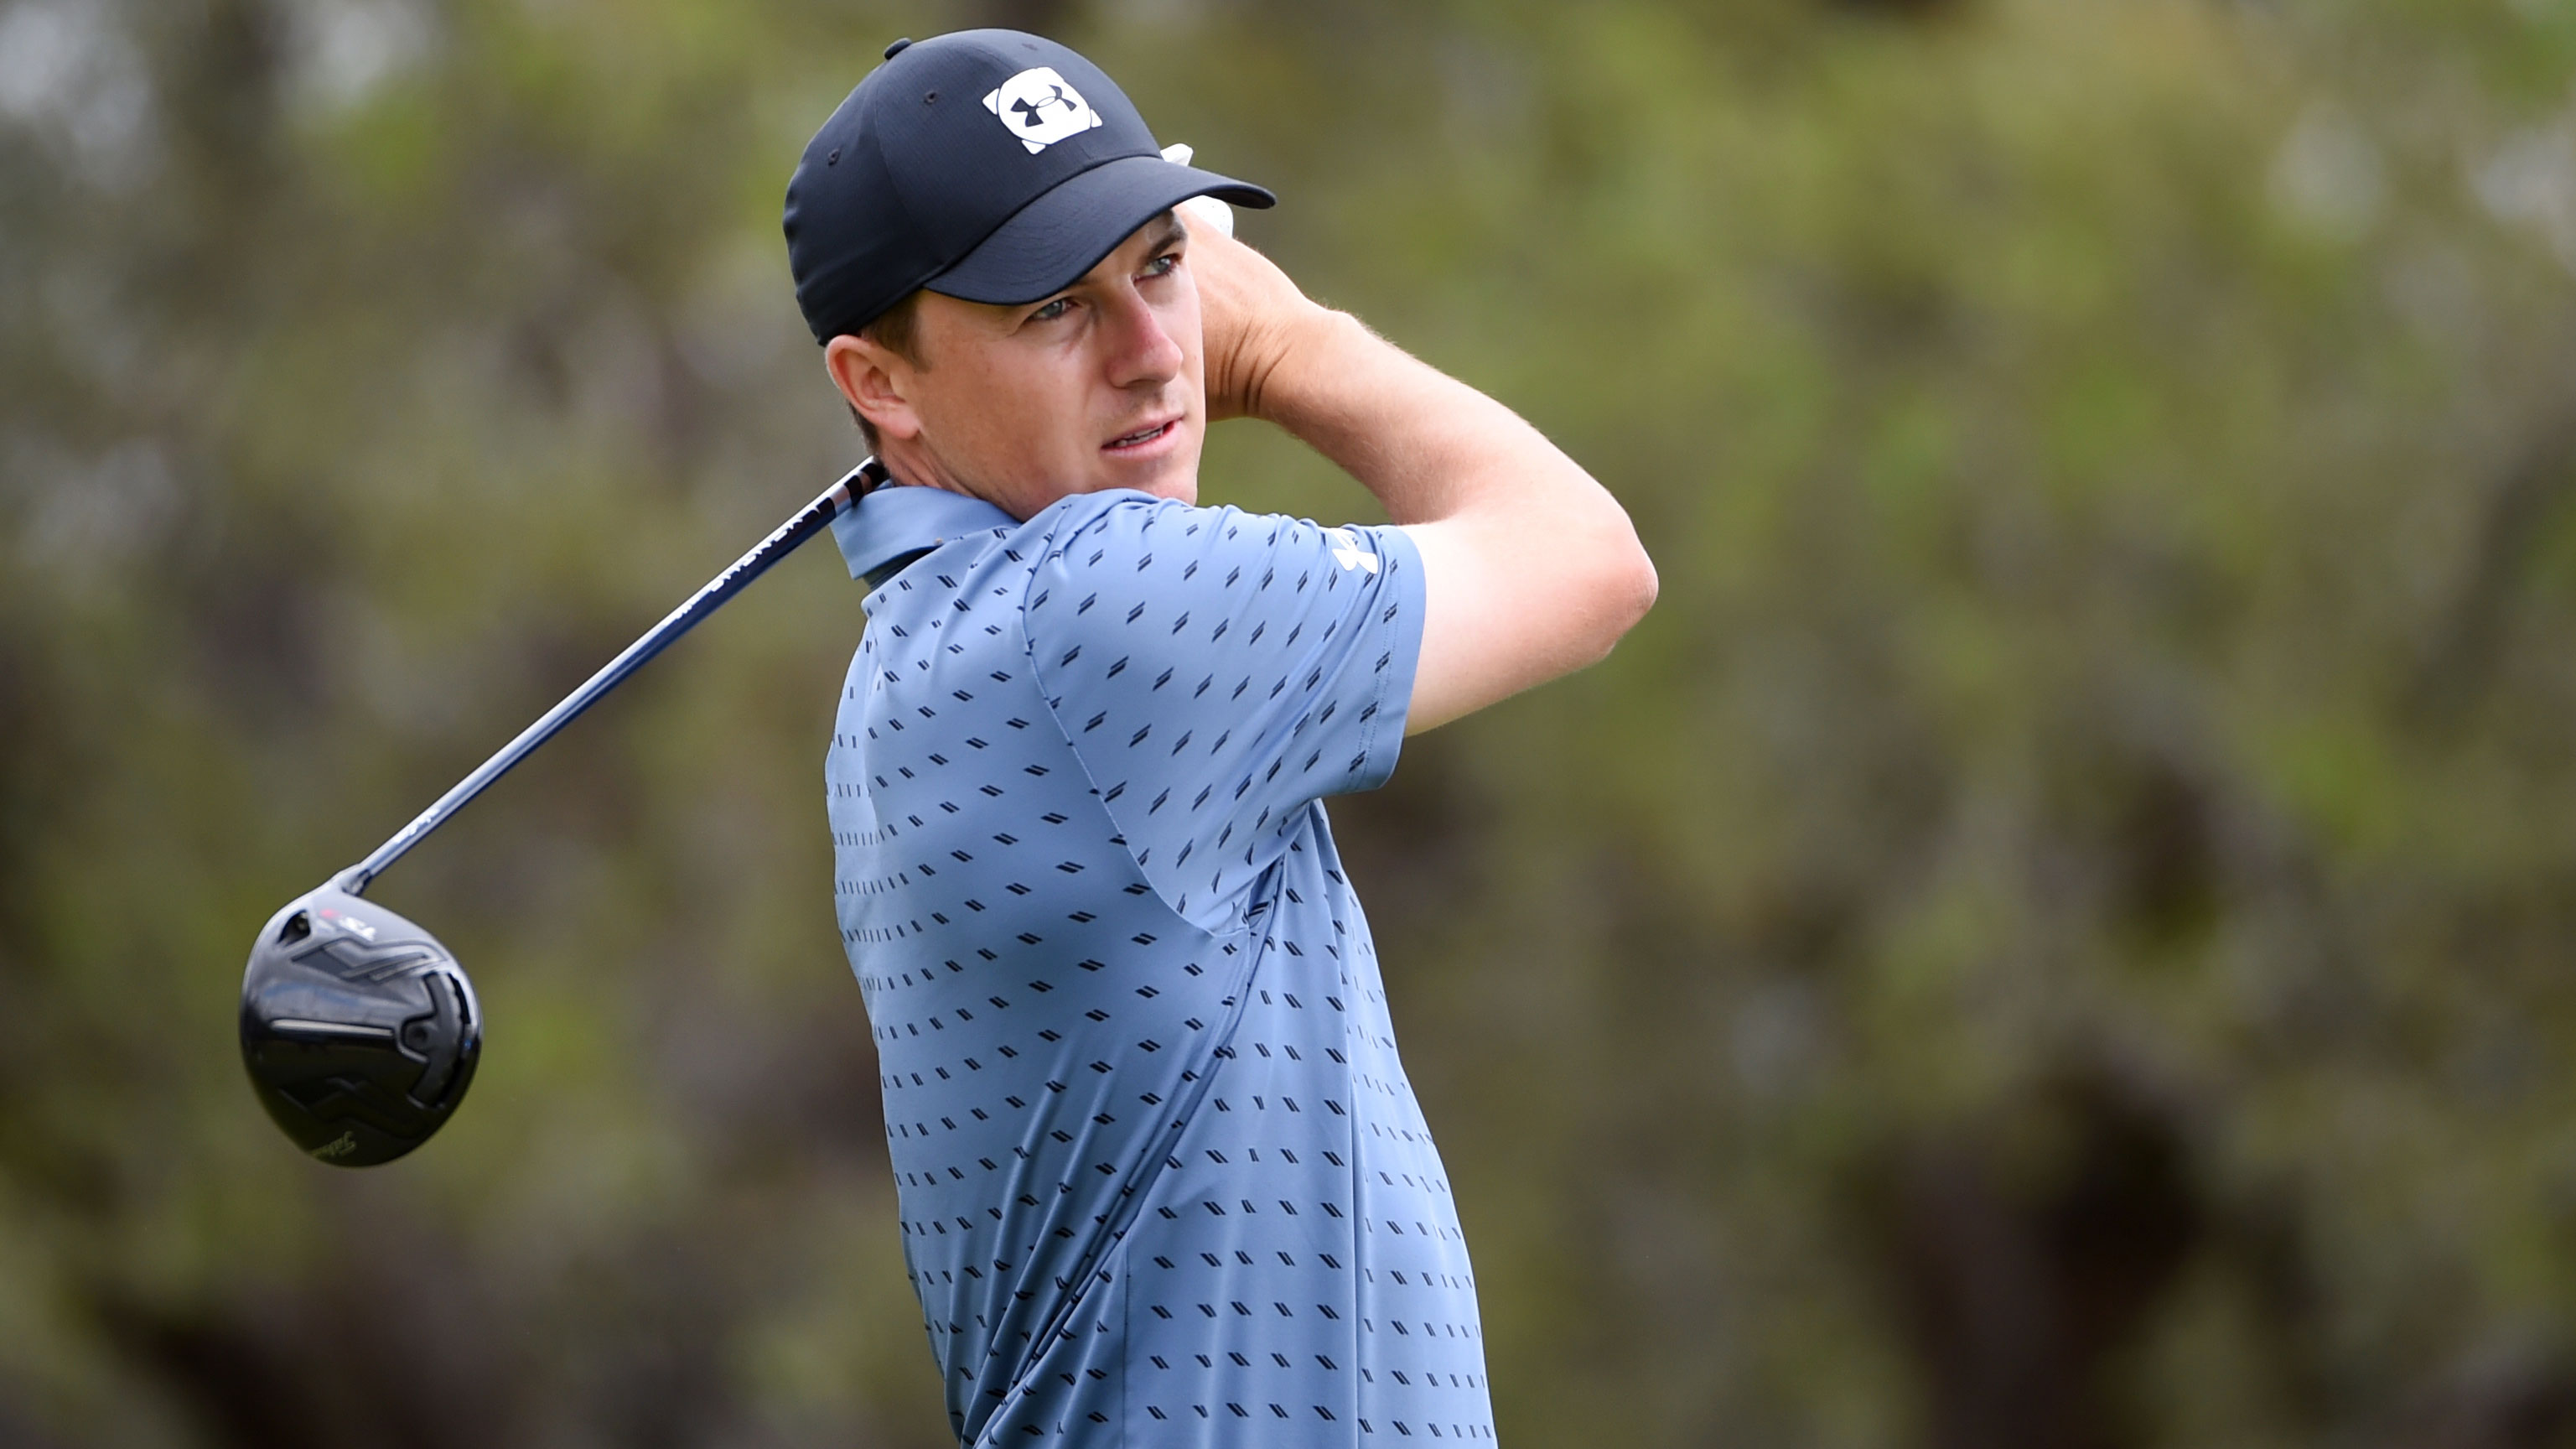 Jordan Spieth hits a drive in the final round of his Texas Open win.